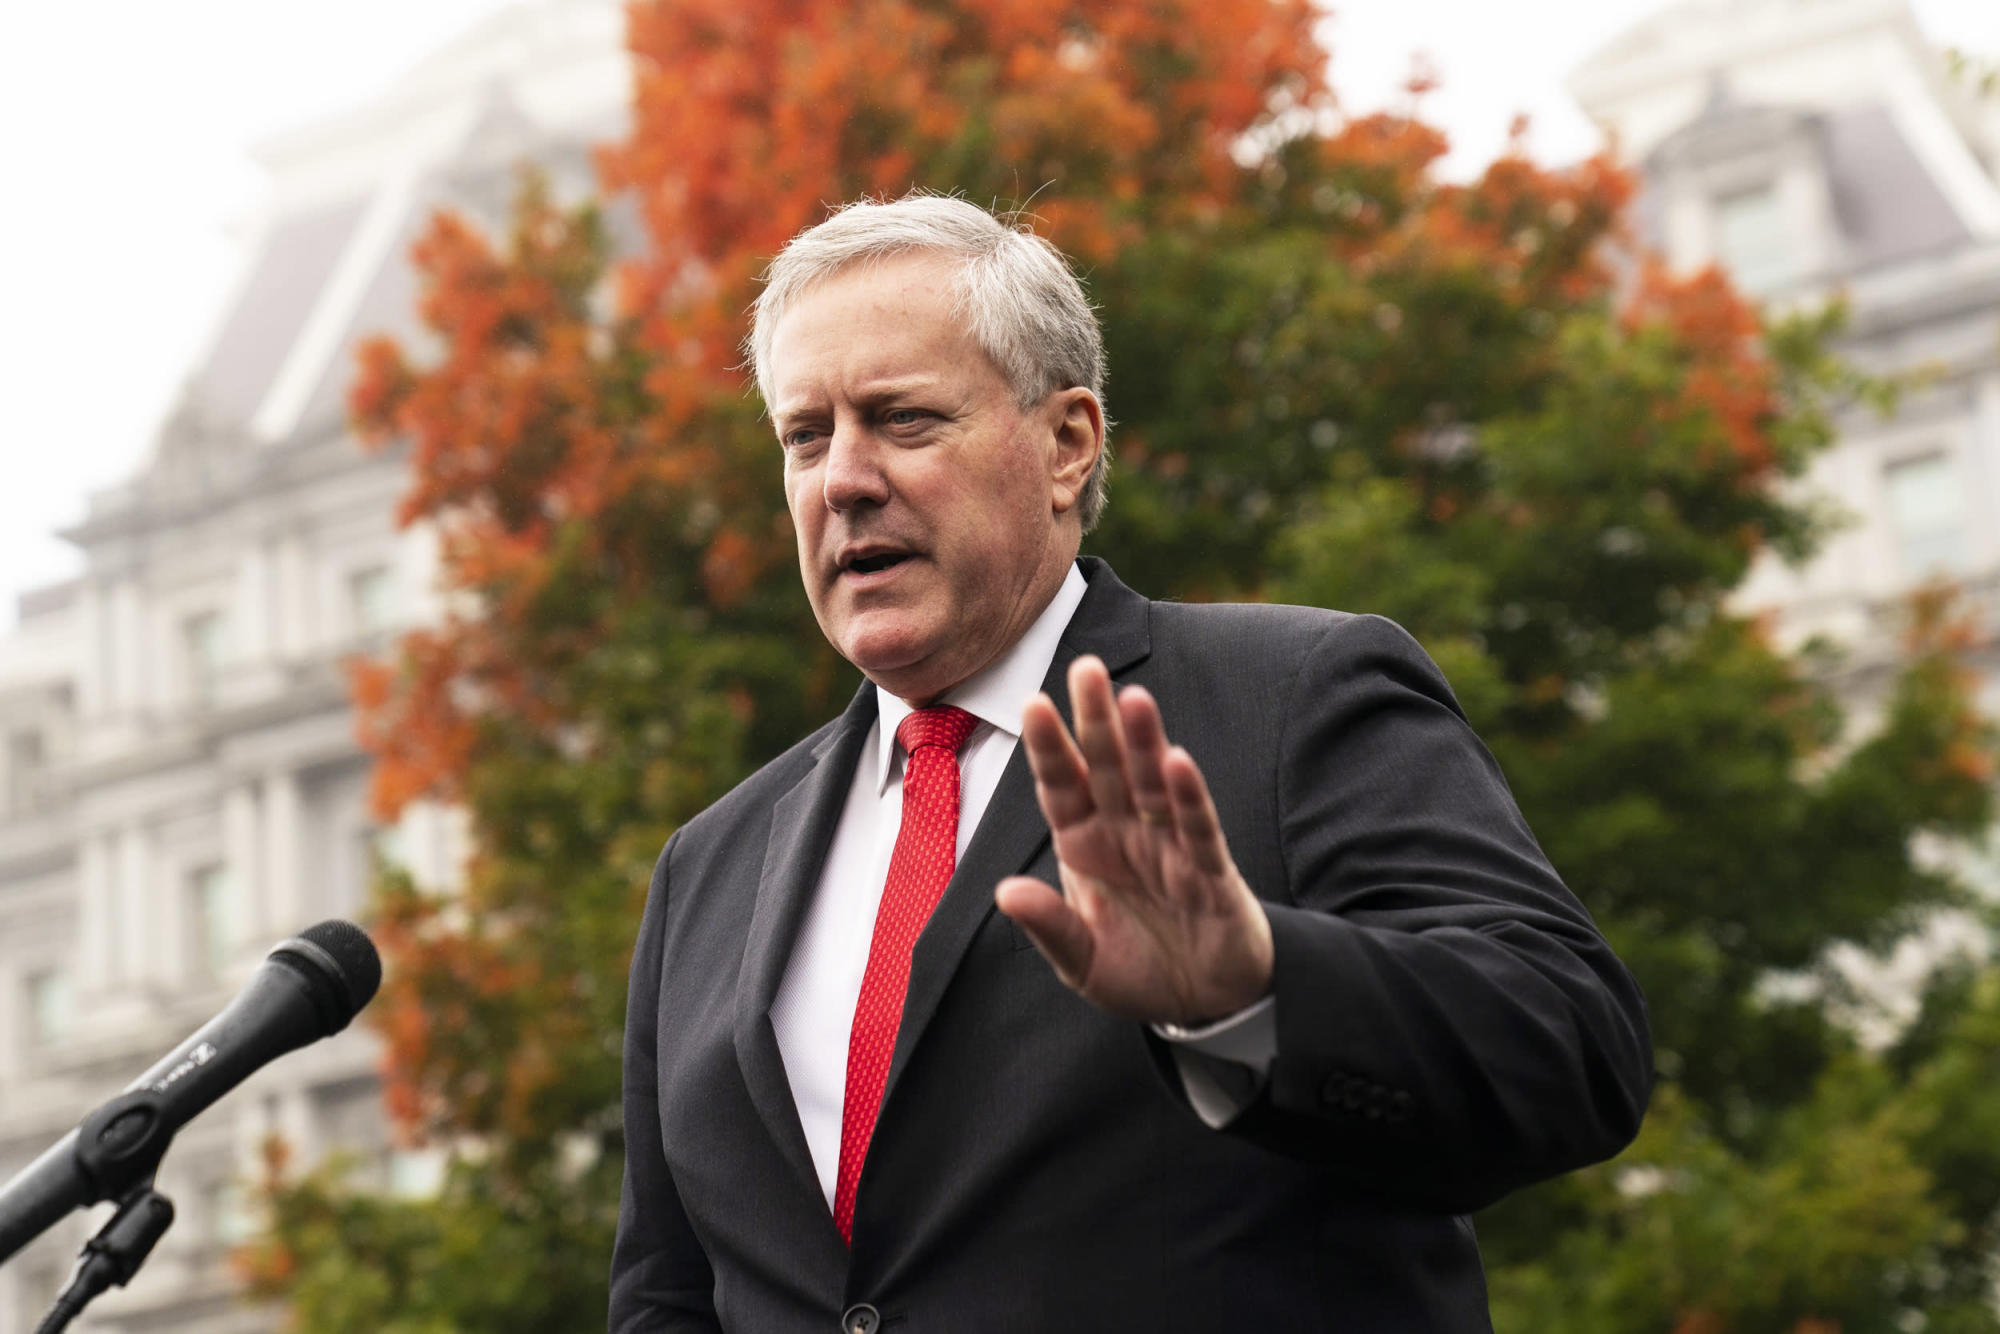 Meadows says 'we're not going to control the pandemic' in heated interview